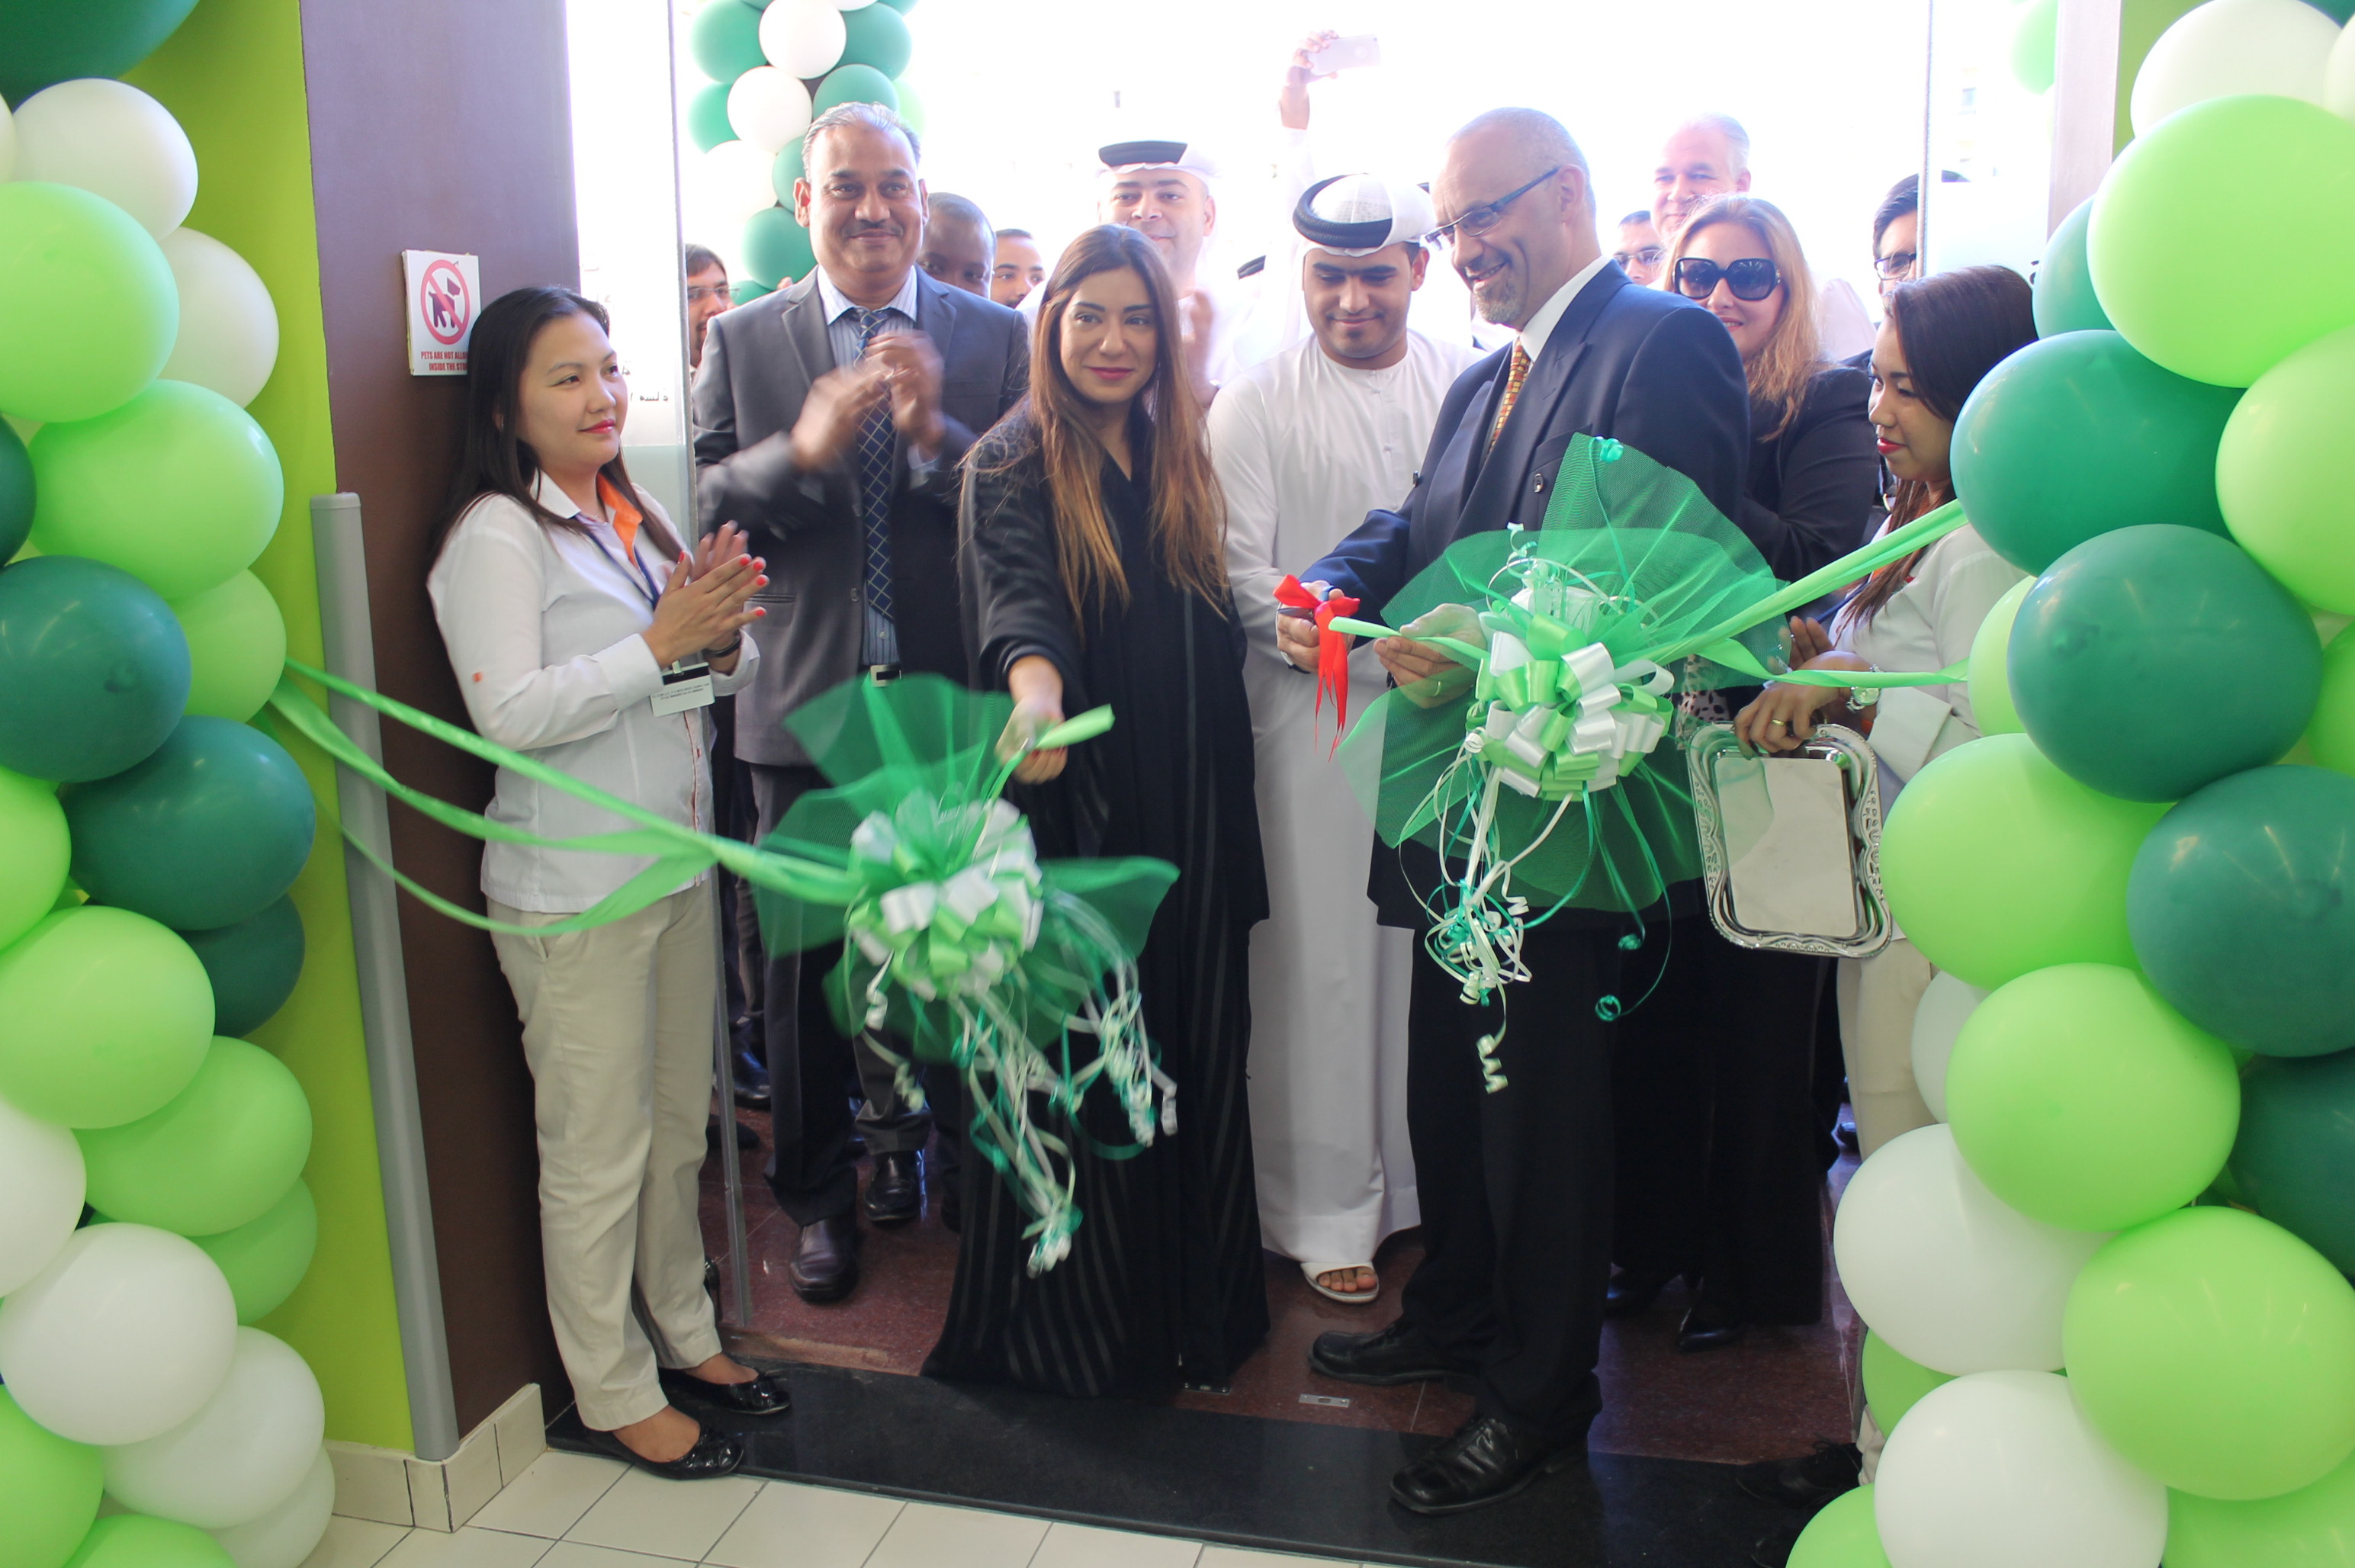 Fucom opens Géant Easy supermarket in Ghoroob Mirdif